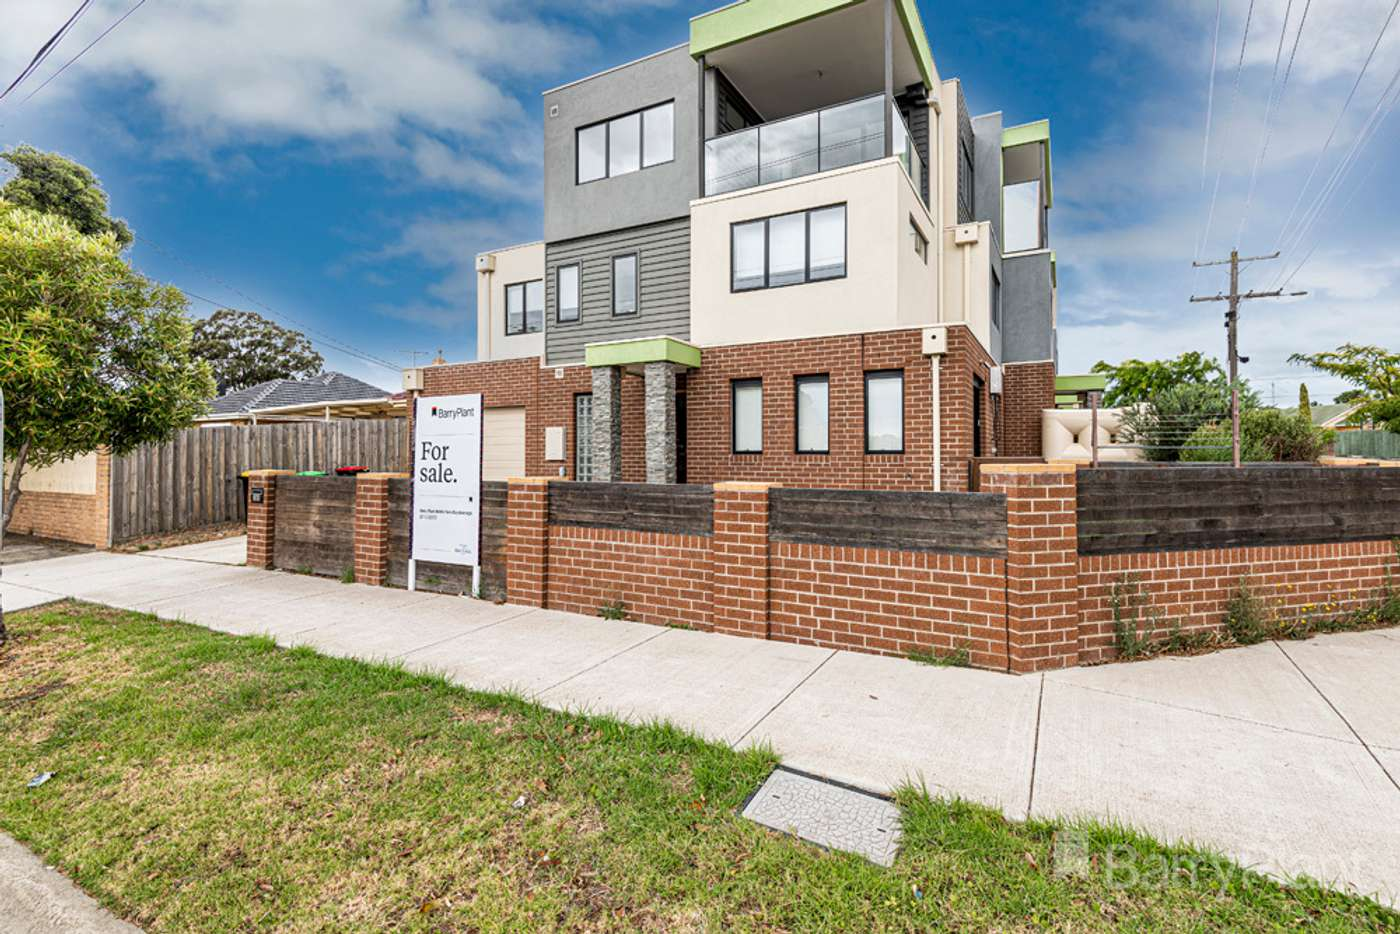 Main view of Homely house listing, 361 Princes Highway, Noble Park VIC 3174